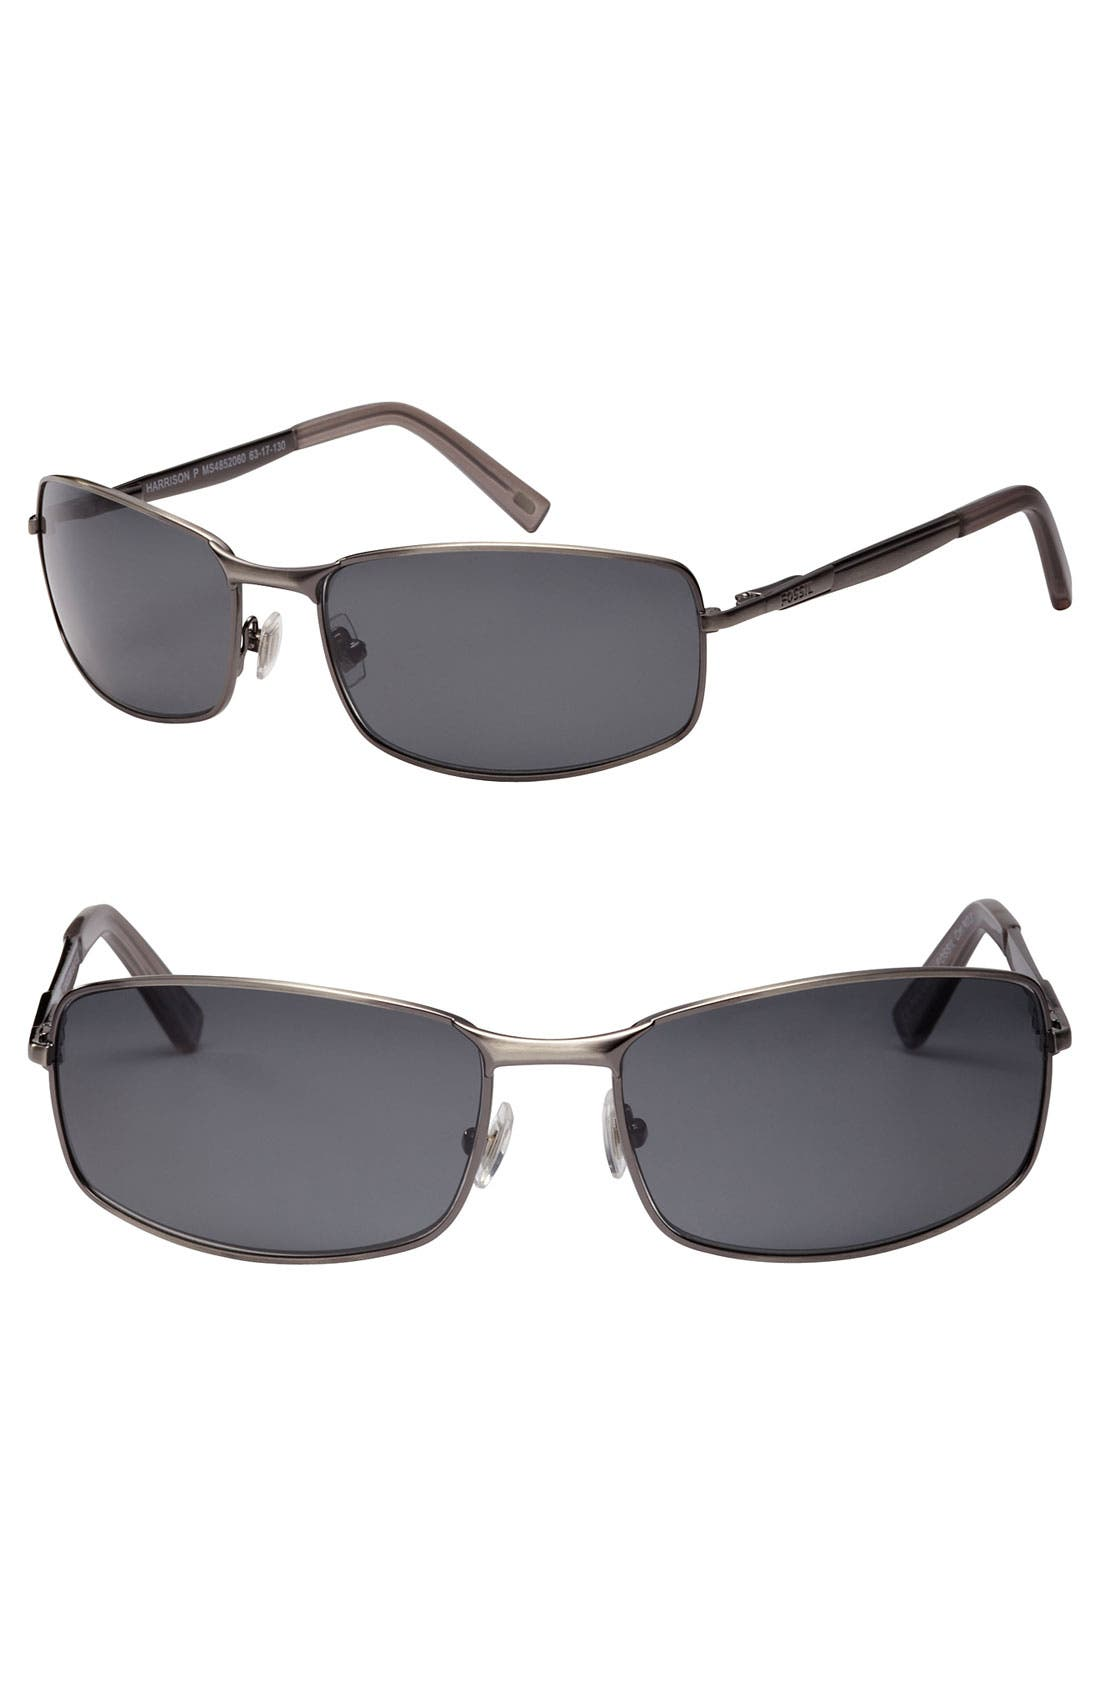 Main Image - Fossil 'Harrison' Polarized Sunglasses